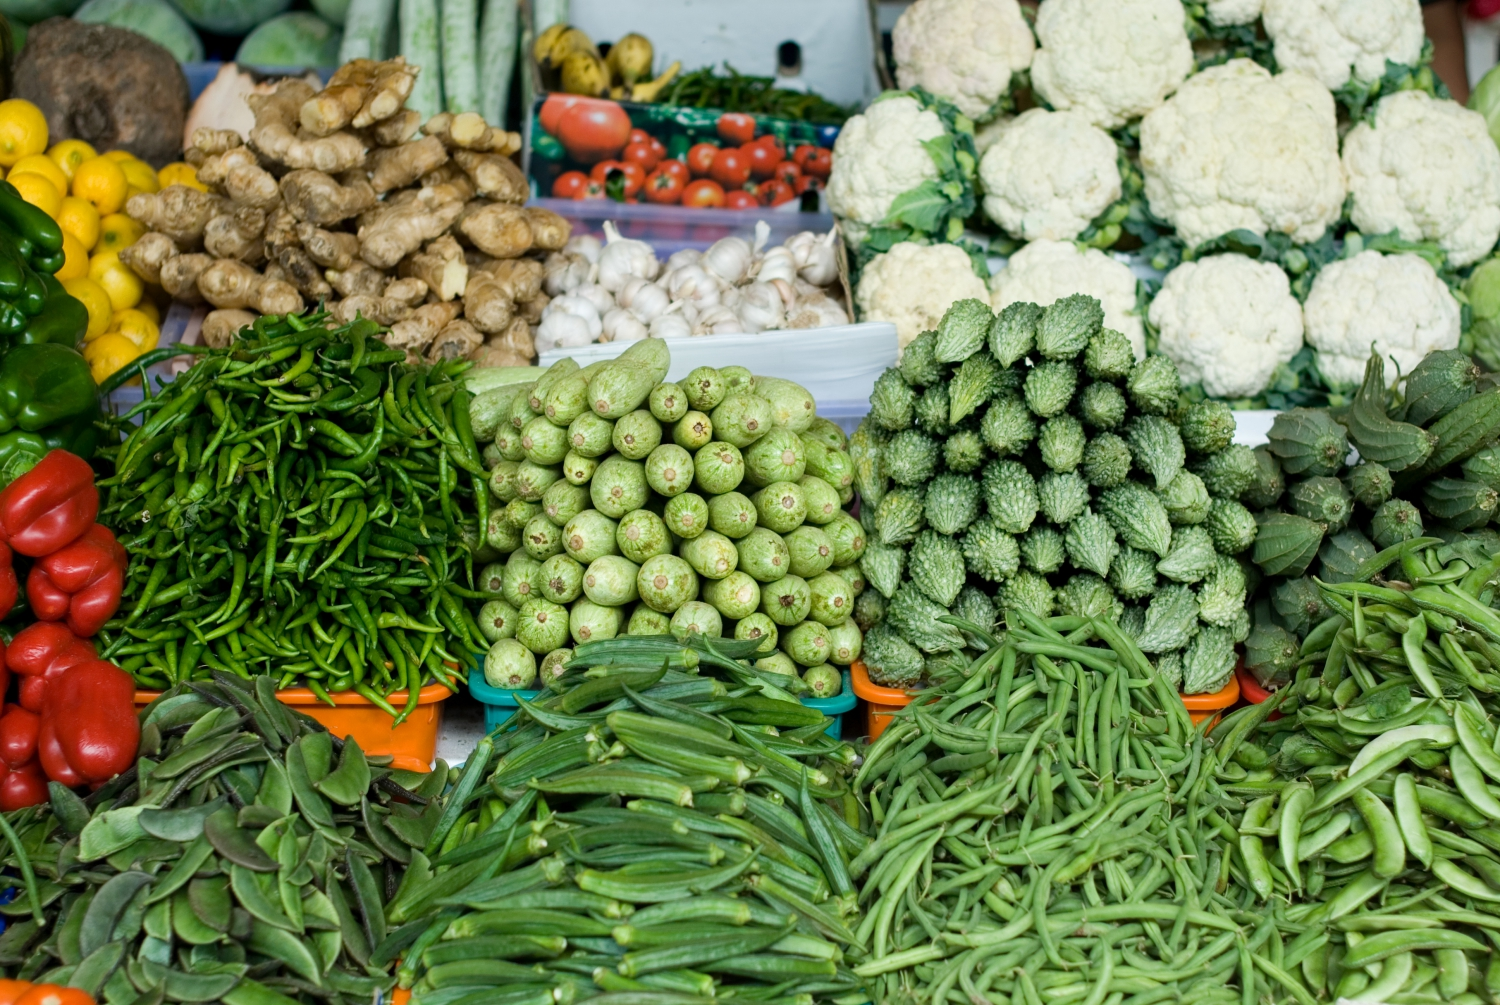 Dubai's Fruit & Vegetable Market